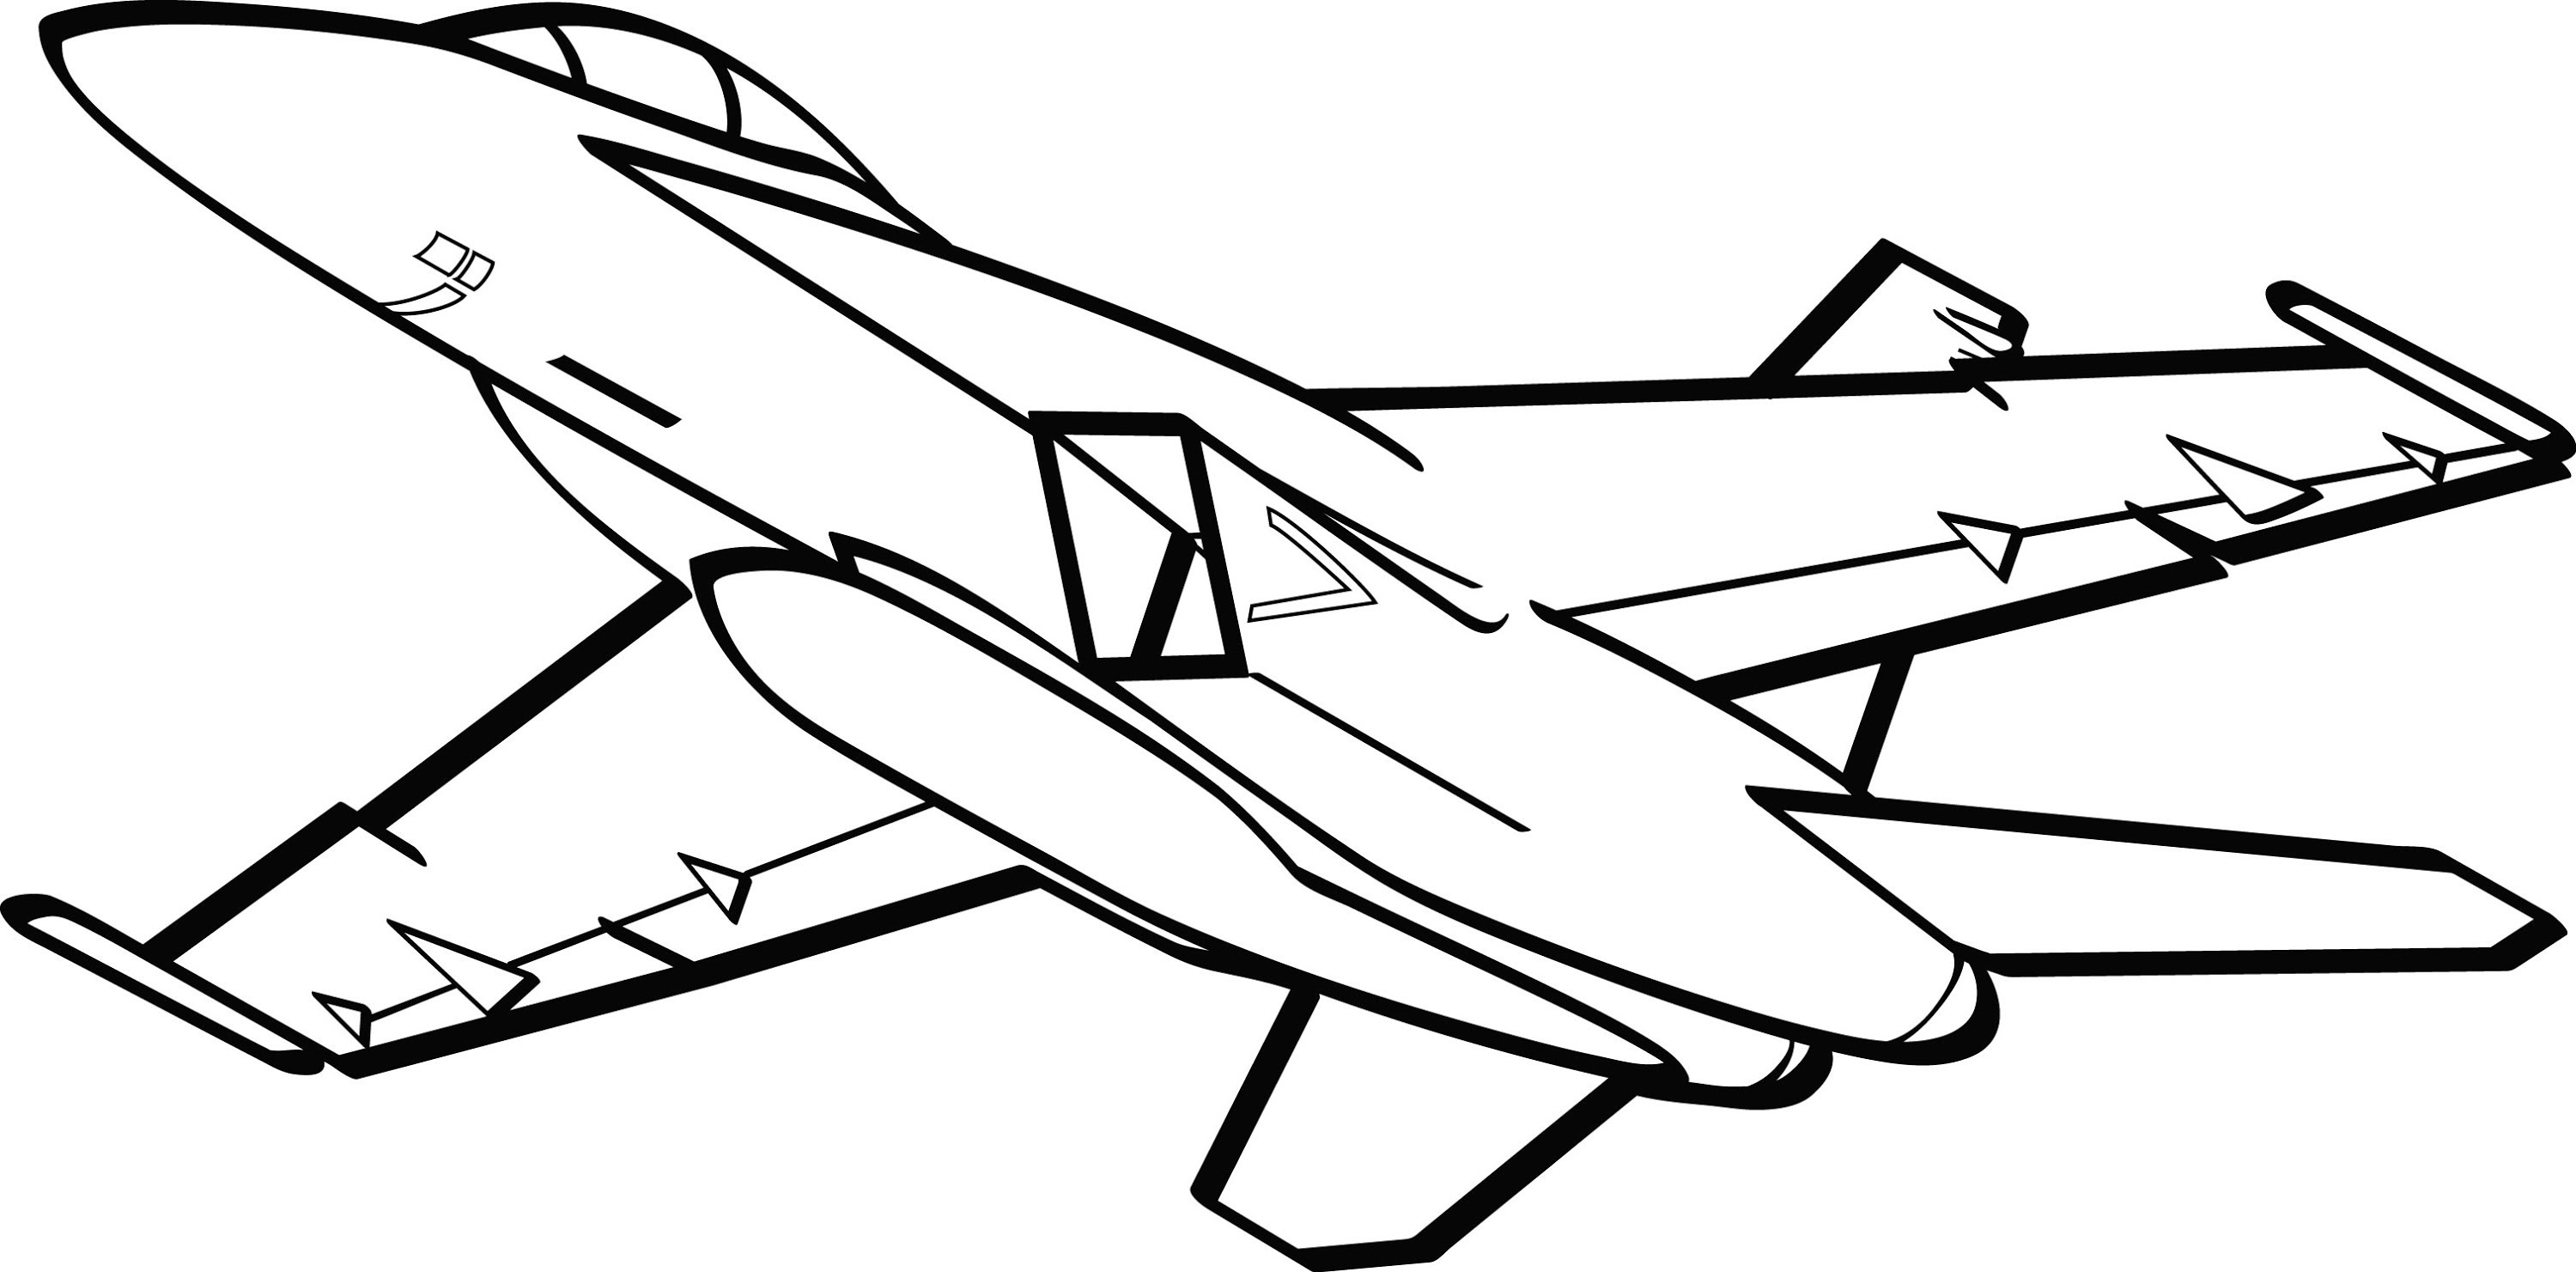 Hornet clipart super hornet. F drawing at getdrawings